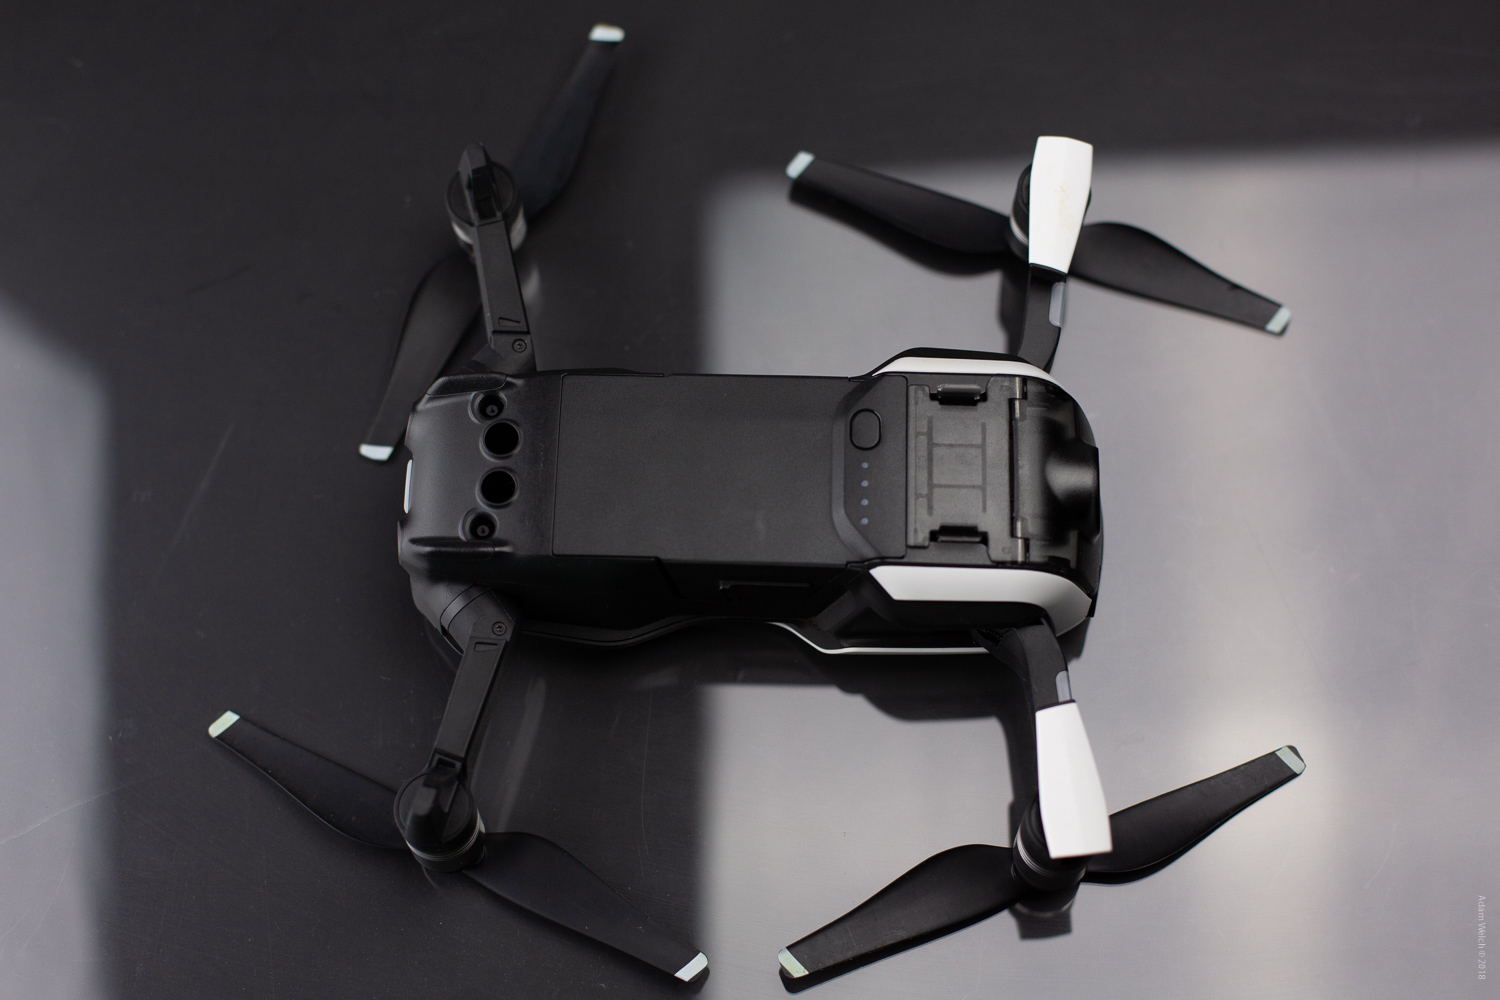 6 - Gear: DJI Mavic Air Drone Review - Better than the Mavic Pro?